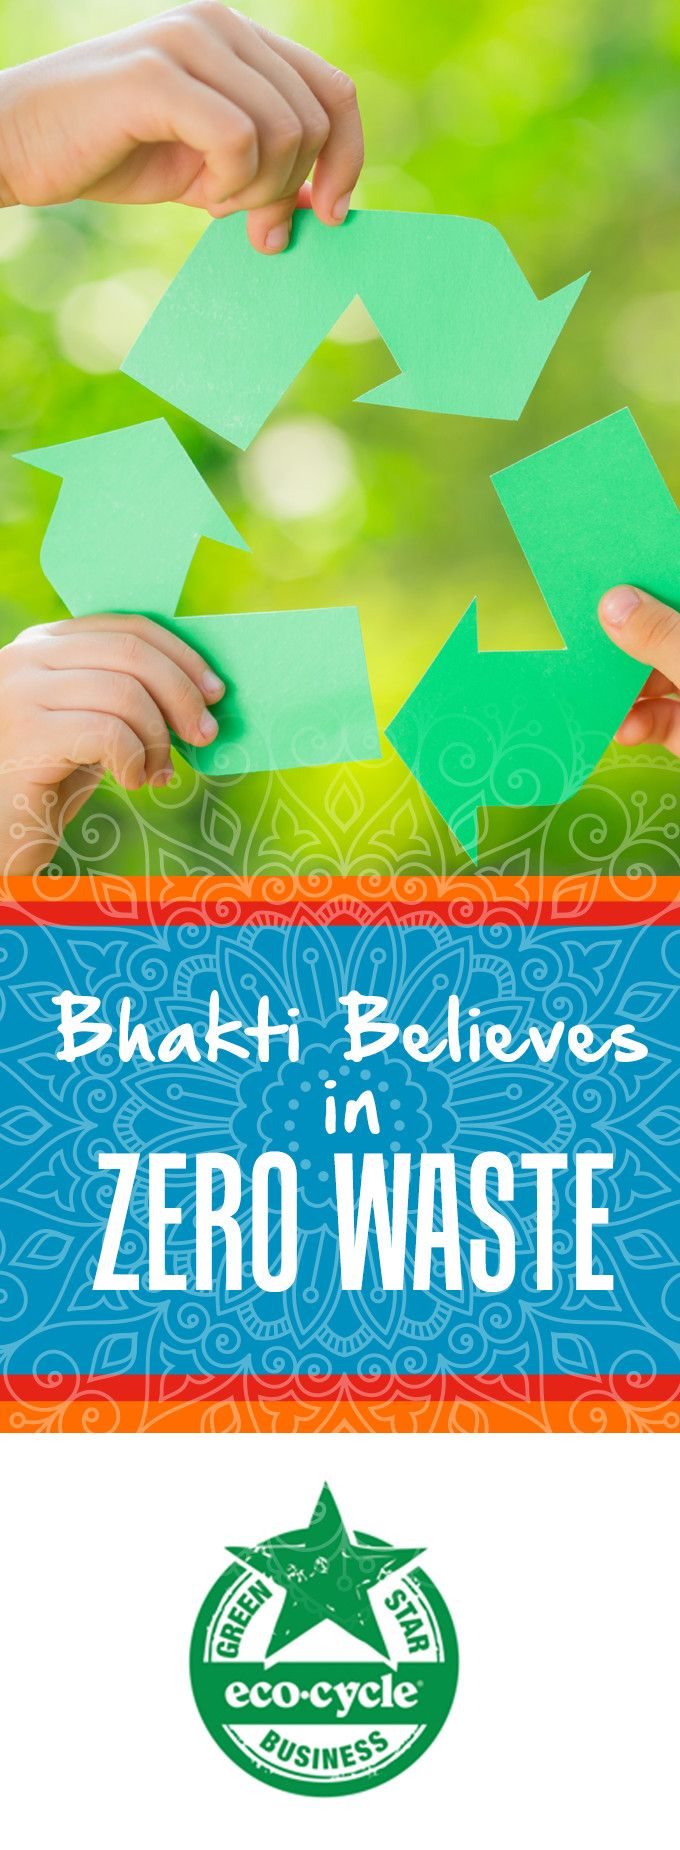 Focusing our efforts on sustainability is extremely important at Bhakti. Learn about how we make our business Zero-Waste as part of our sustainability efforts.